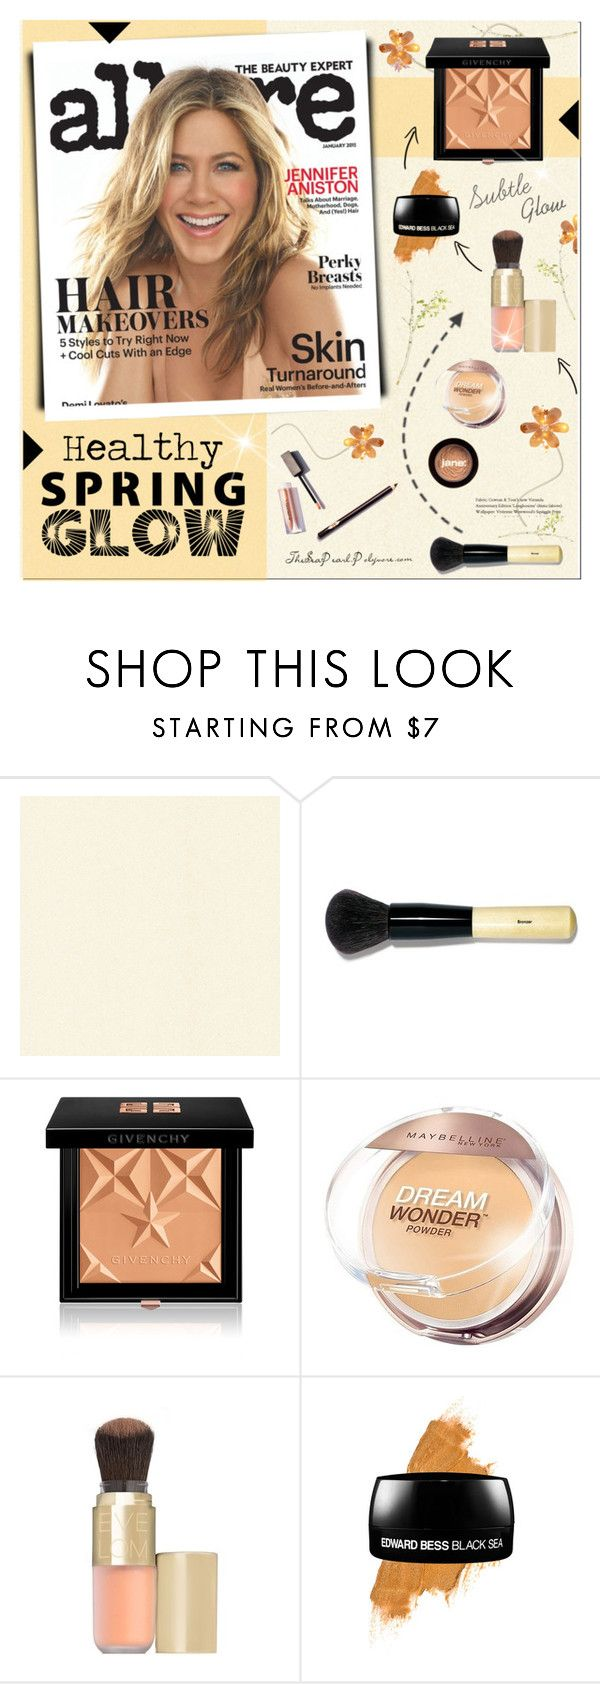 """Spring Beauty: Subtle Glow"" by theseapearl ❤ liked on Polyvore featuring beauty, Brewster Home Fashions, Bobbi Brown Cosmetics, Givenchy, Maybelline, Eve Lom, Edward Bess, jane, GetTheLook and jenniferaniston"